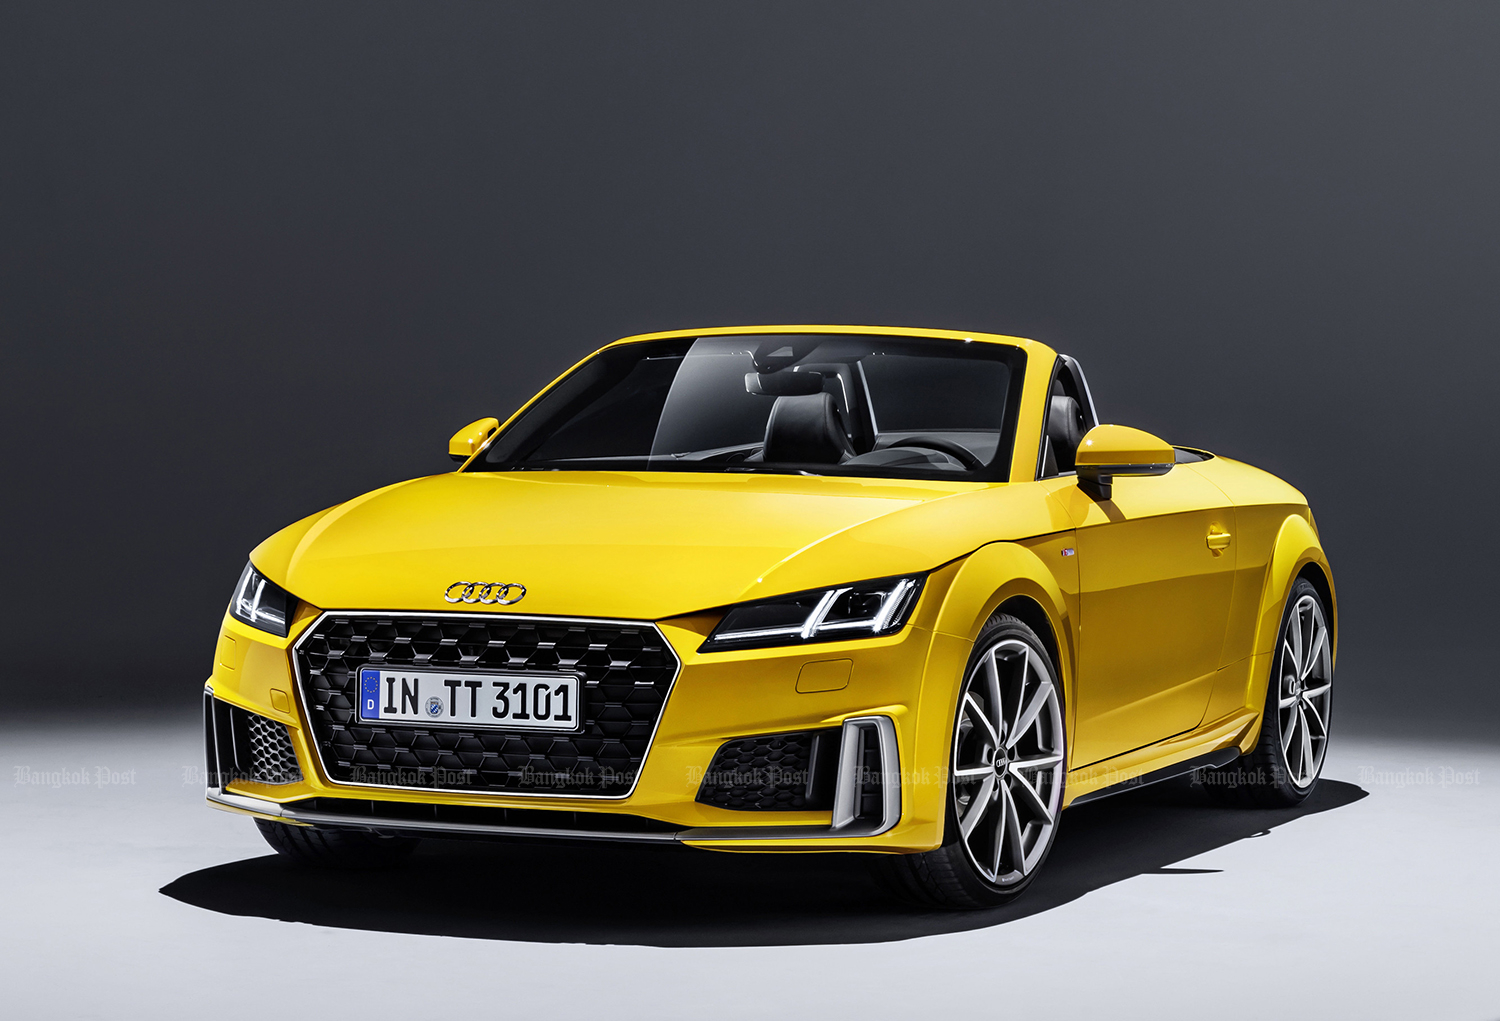 2019 Audi TT Roadster: Thai pricing and specs